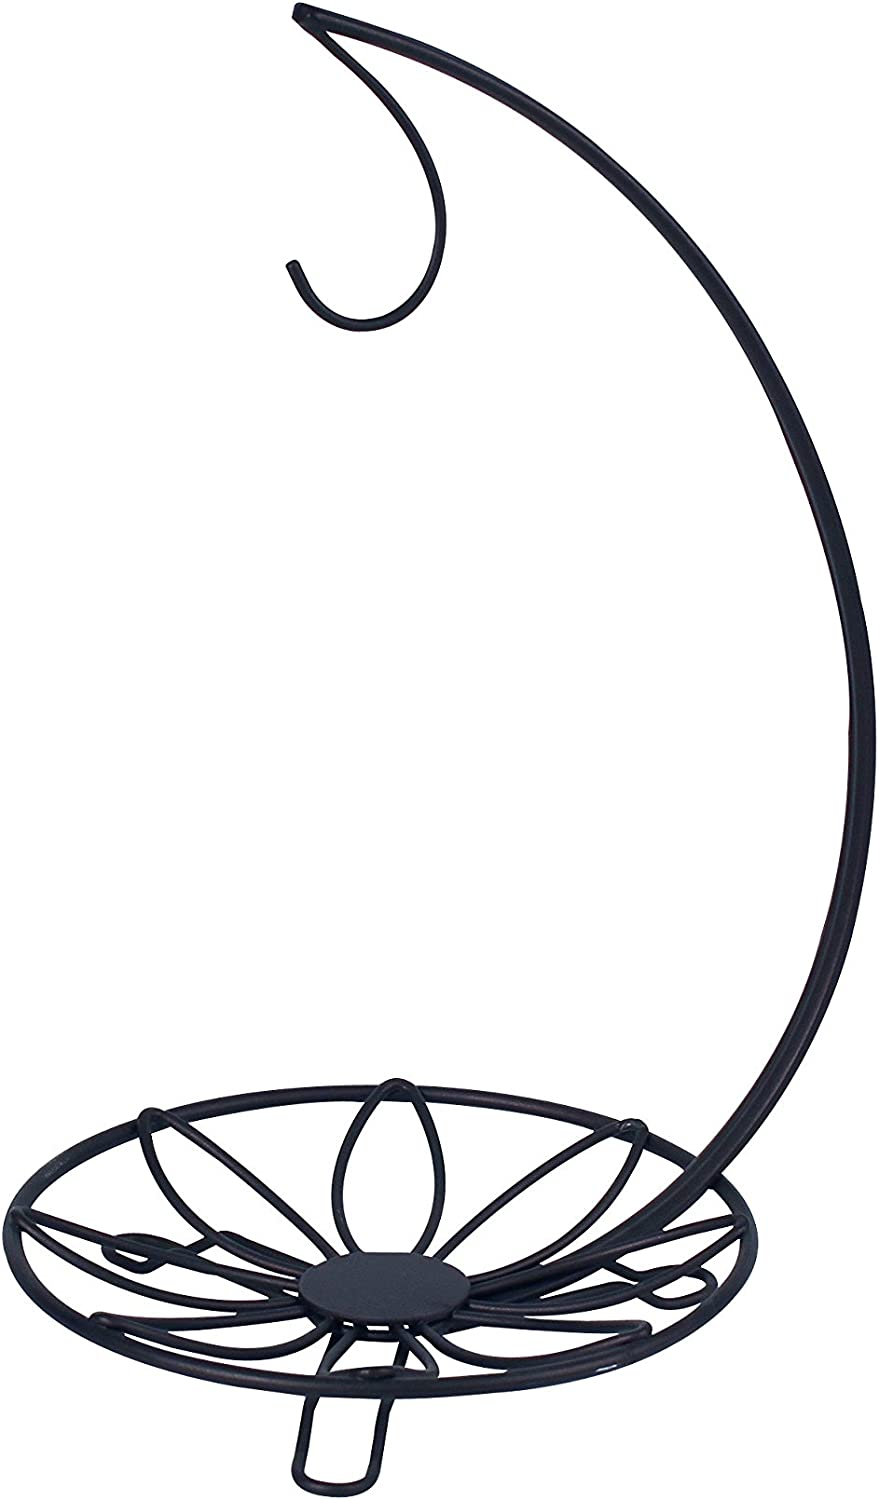 Spectrum Diversified Sits on Bars & Tables, Black Leaf Holder, Countertop Tree, Banana Hanger & Small Tray for Fruit, Vegetables, Produce, and Snack Storage